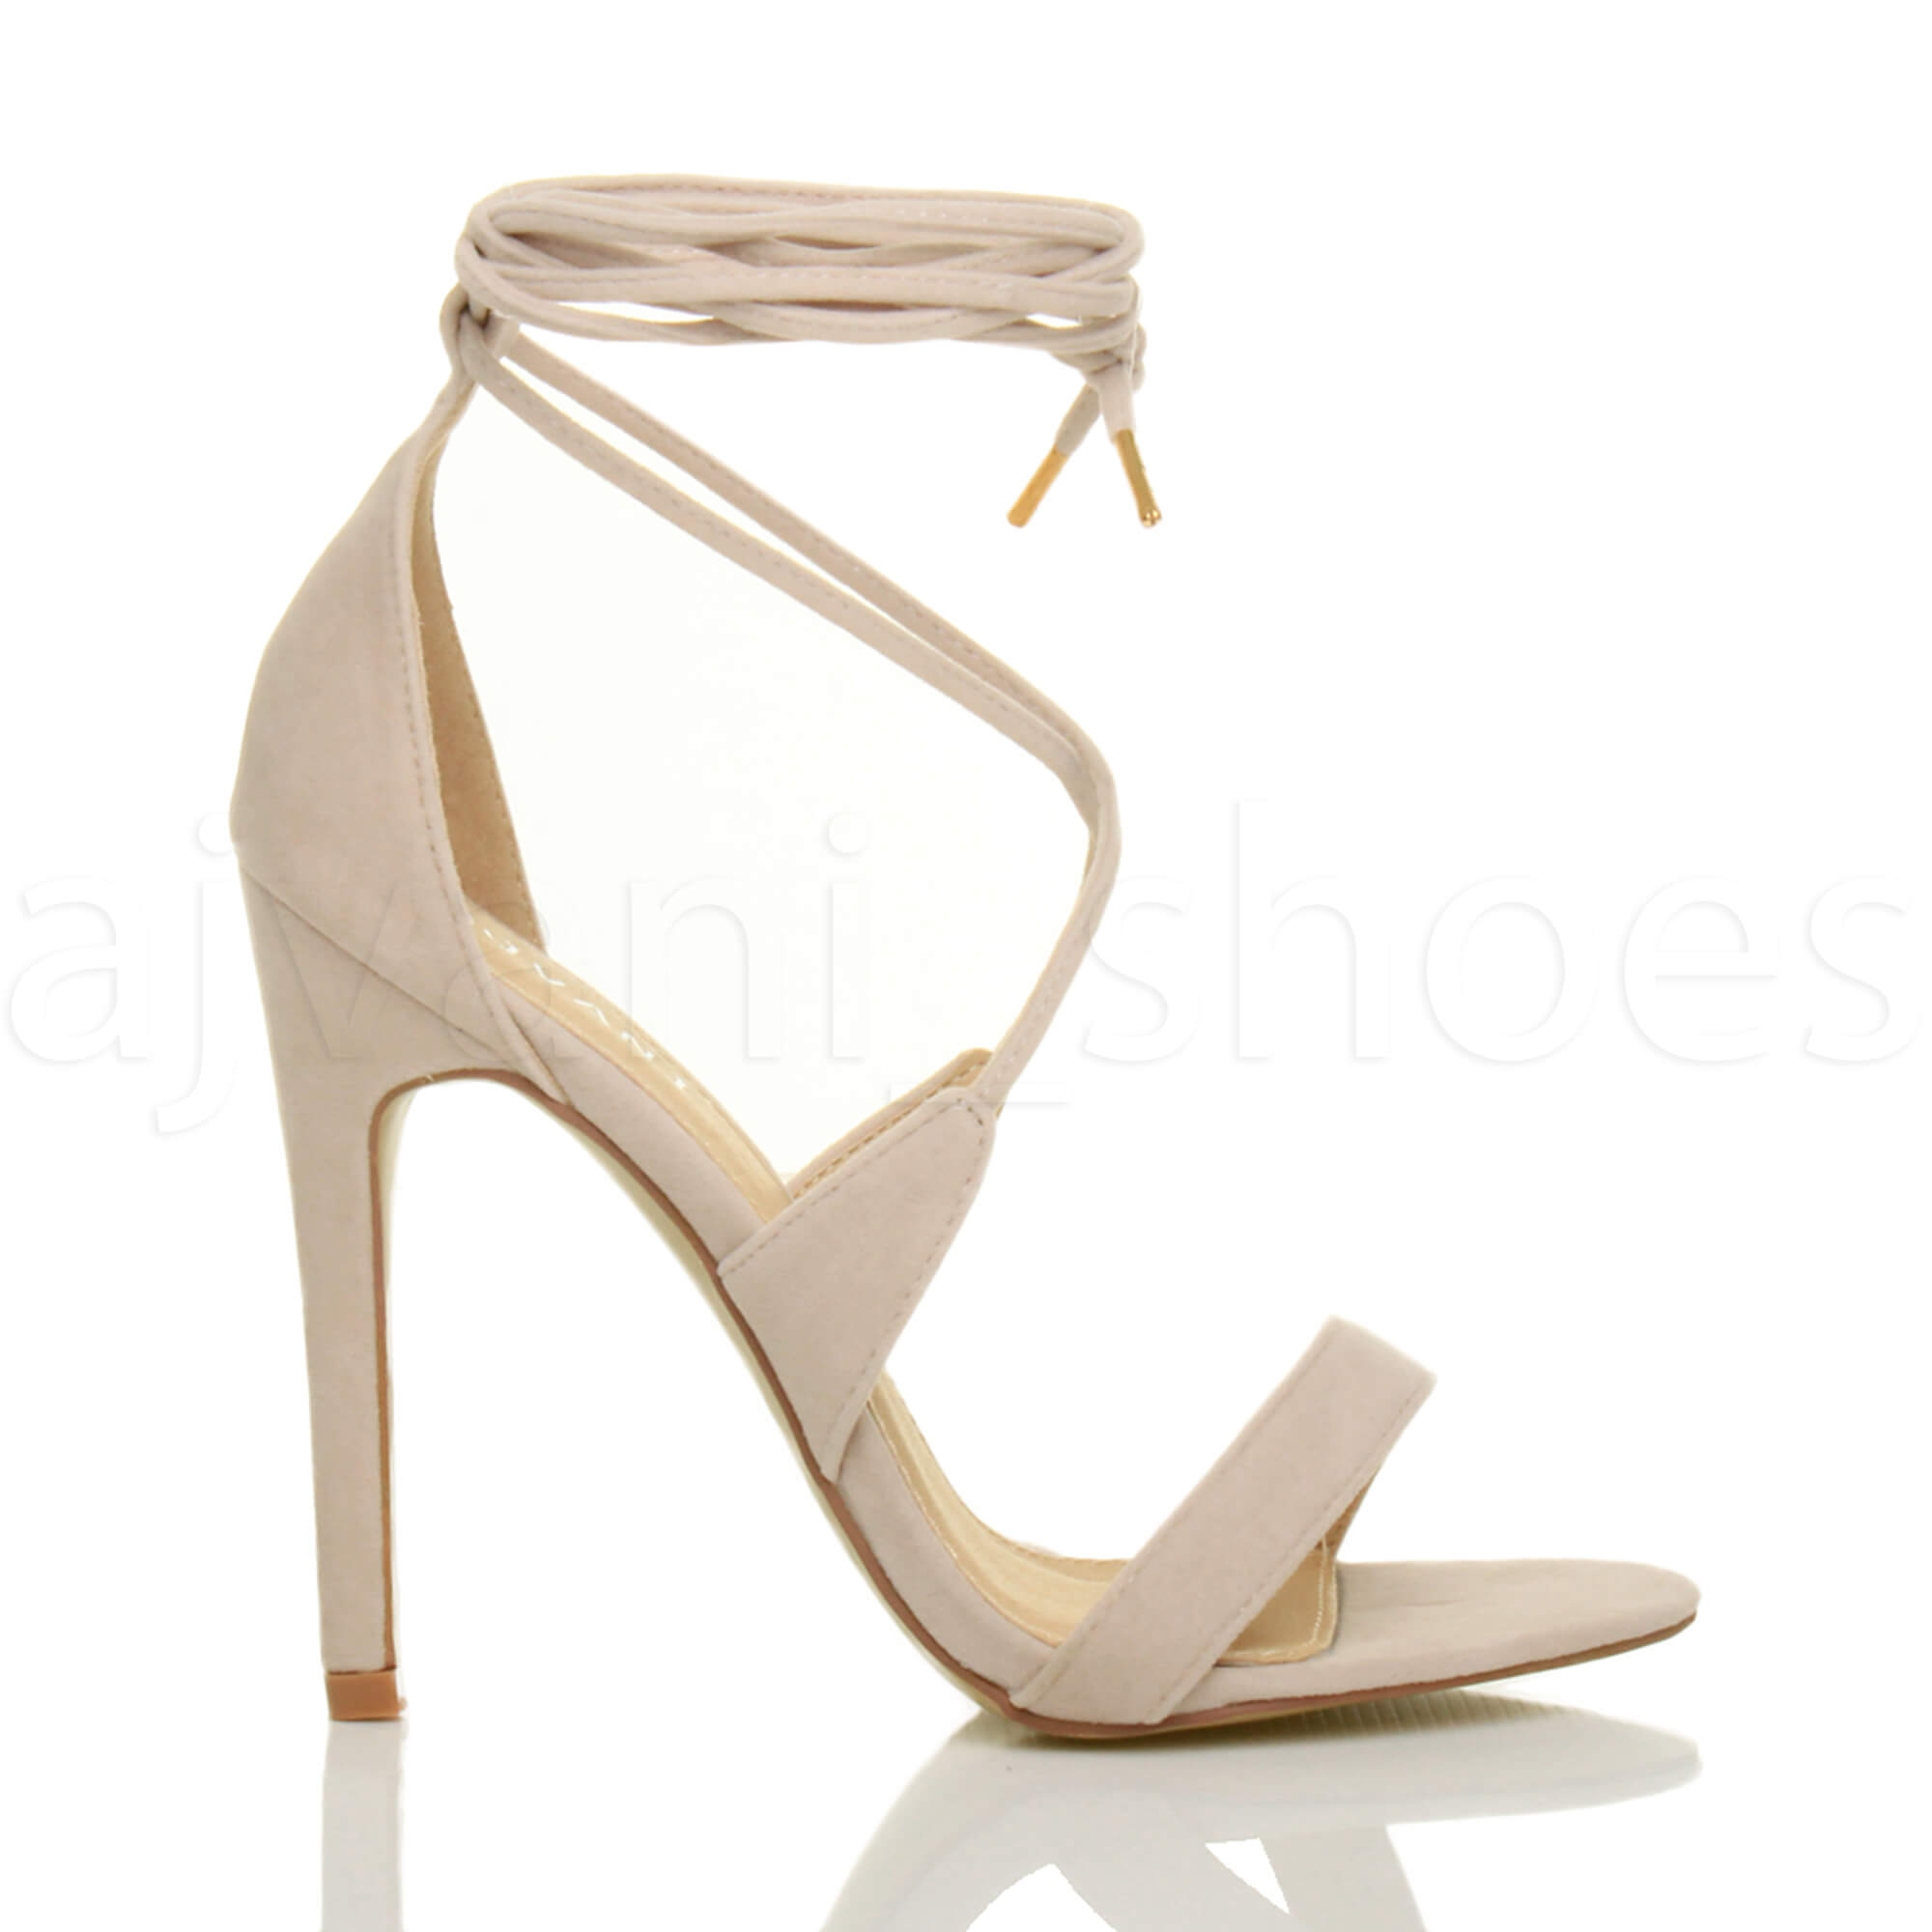 WOMENS-LADIES-HIGH-HEEL-BARELY-THERE-STRAPPY-LACE-TIE-UP-SANDALS-SHOES-SIZE thumbnail 39